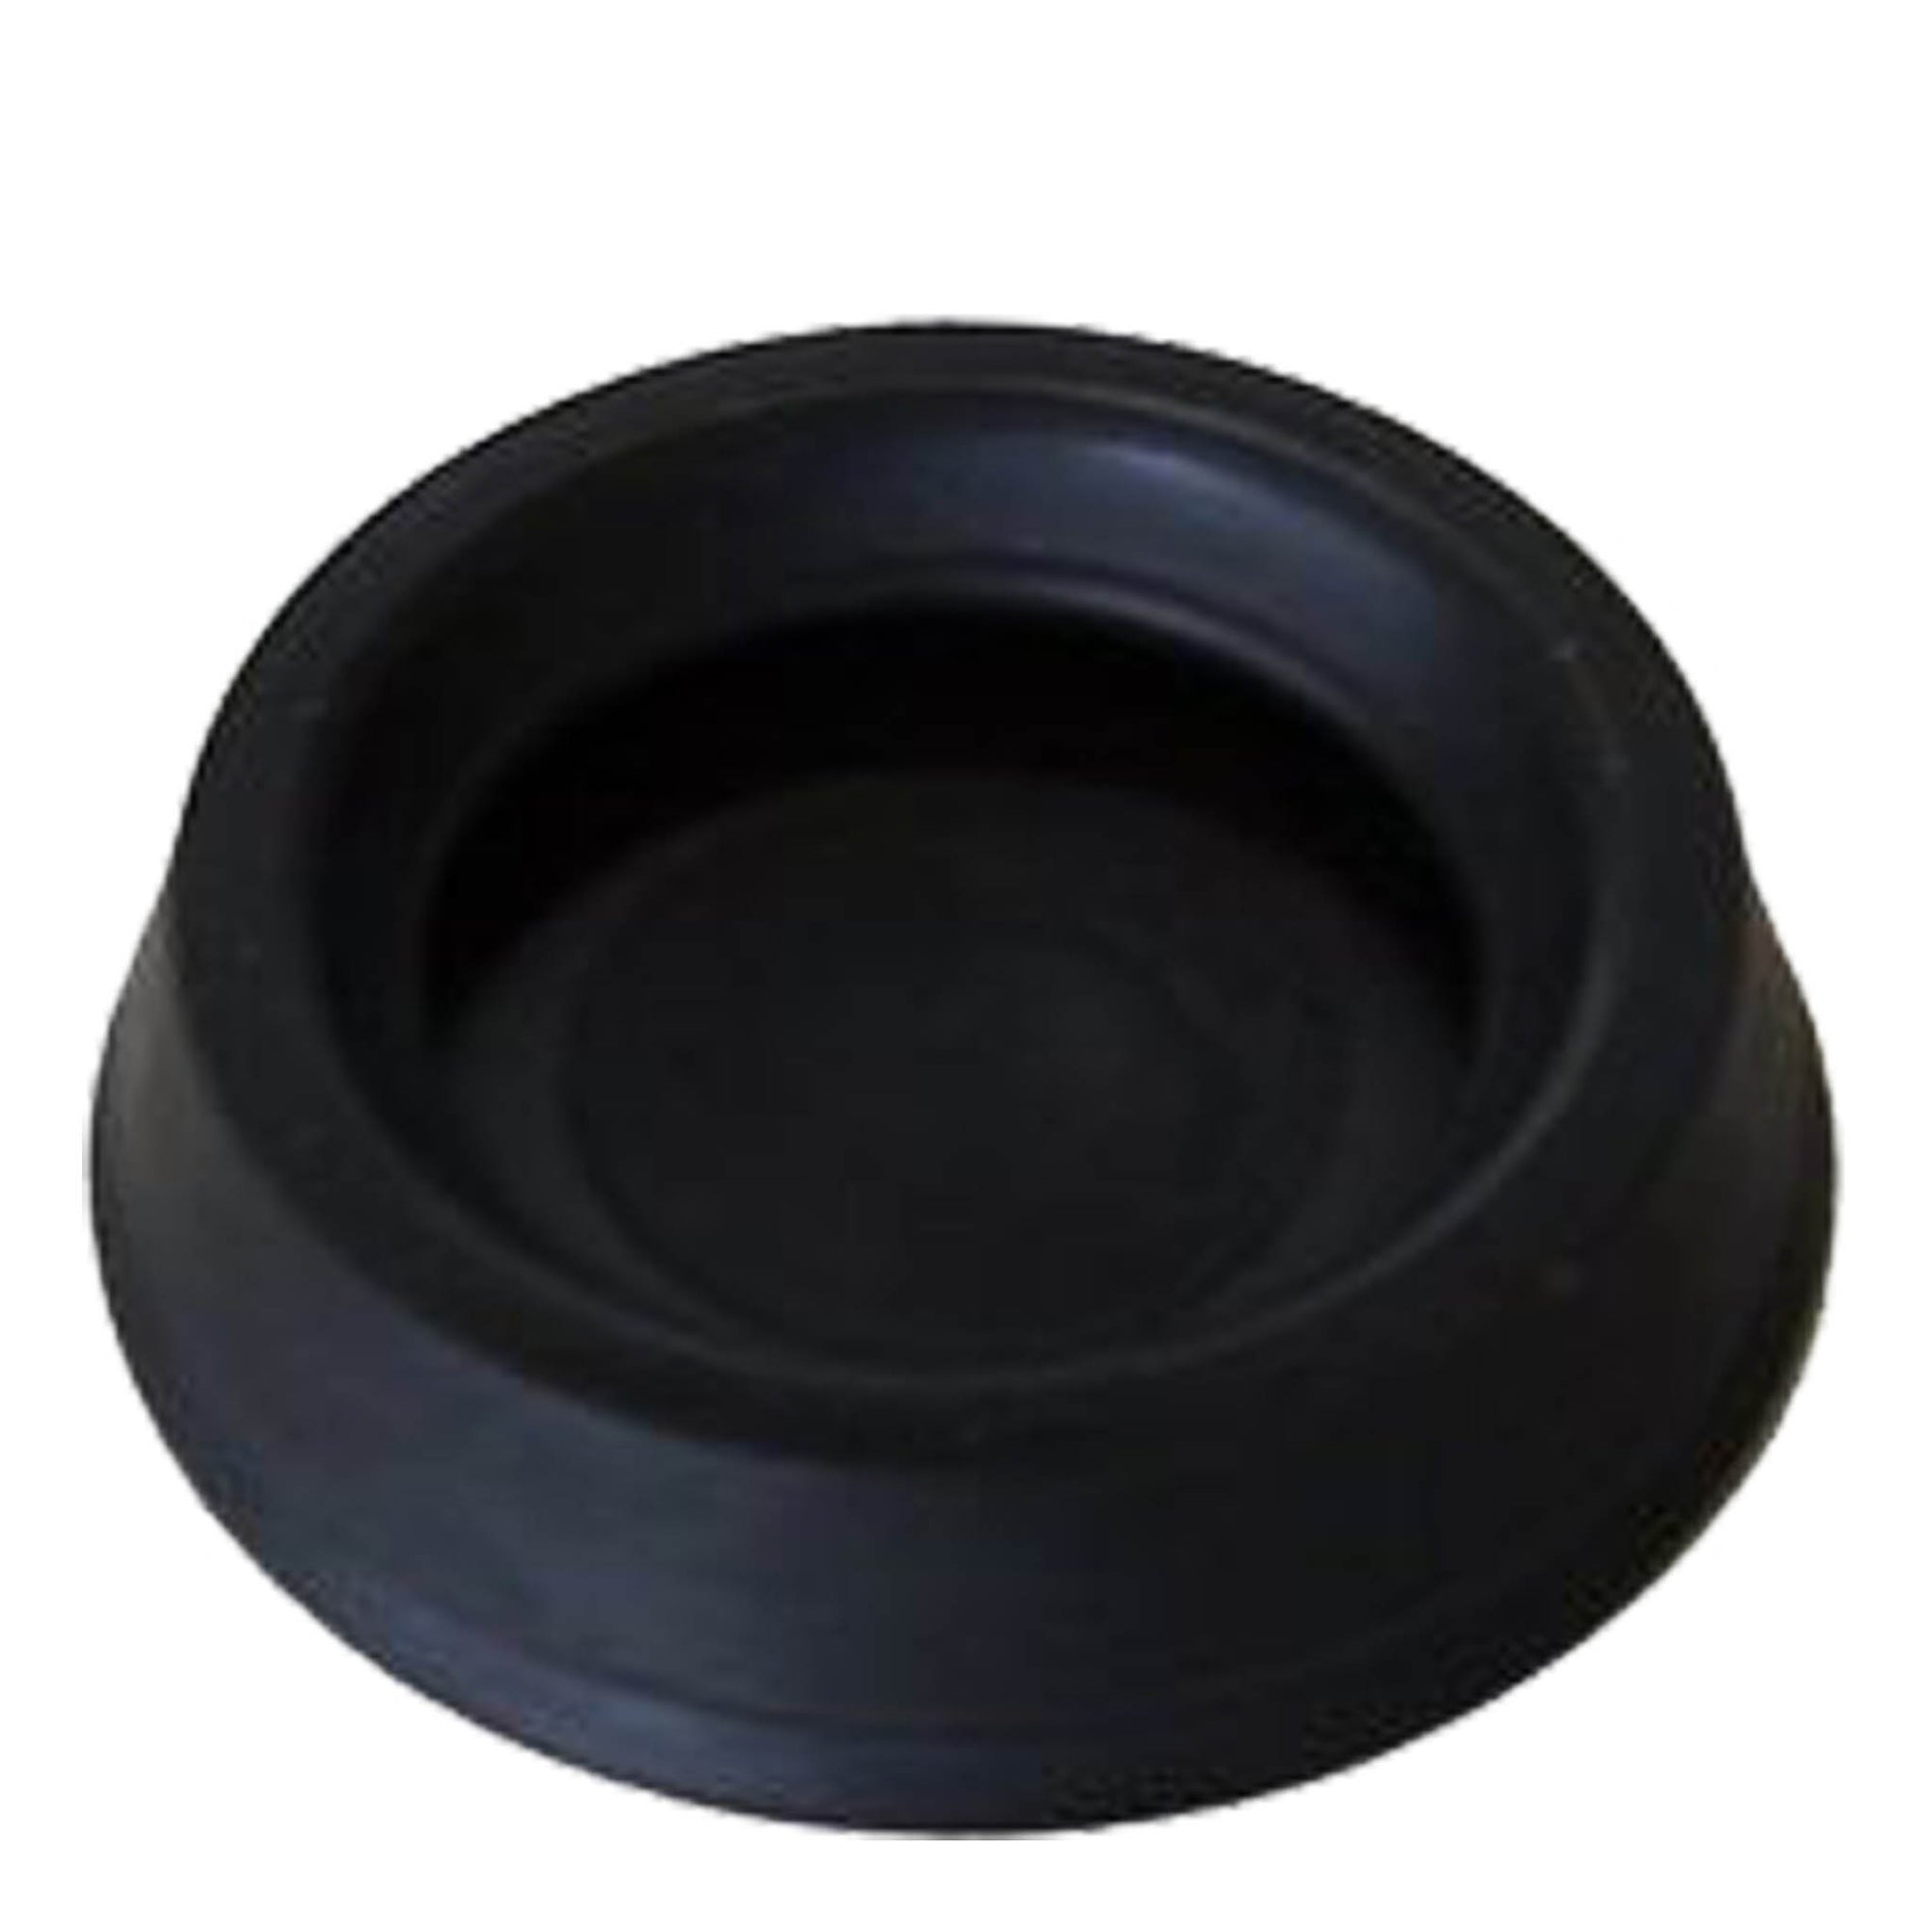 Replacement Rubber Seal - Aeropress - Espresso Gear